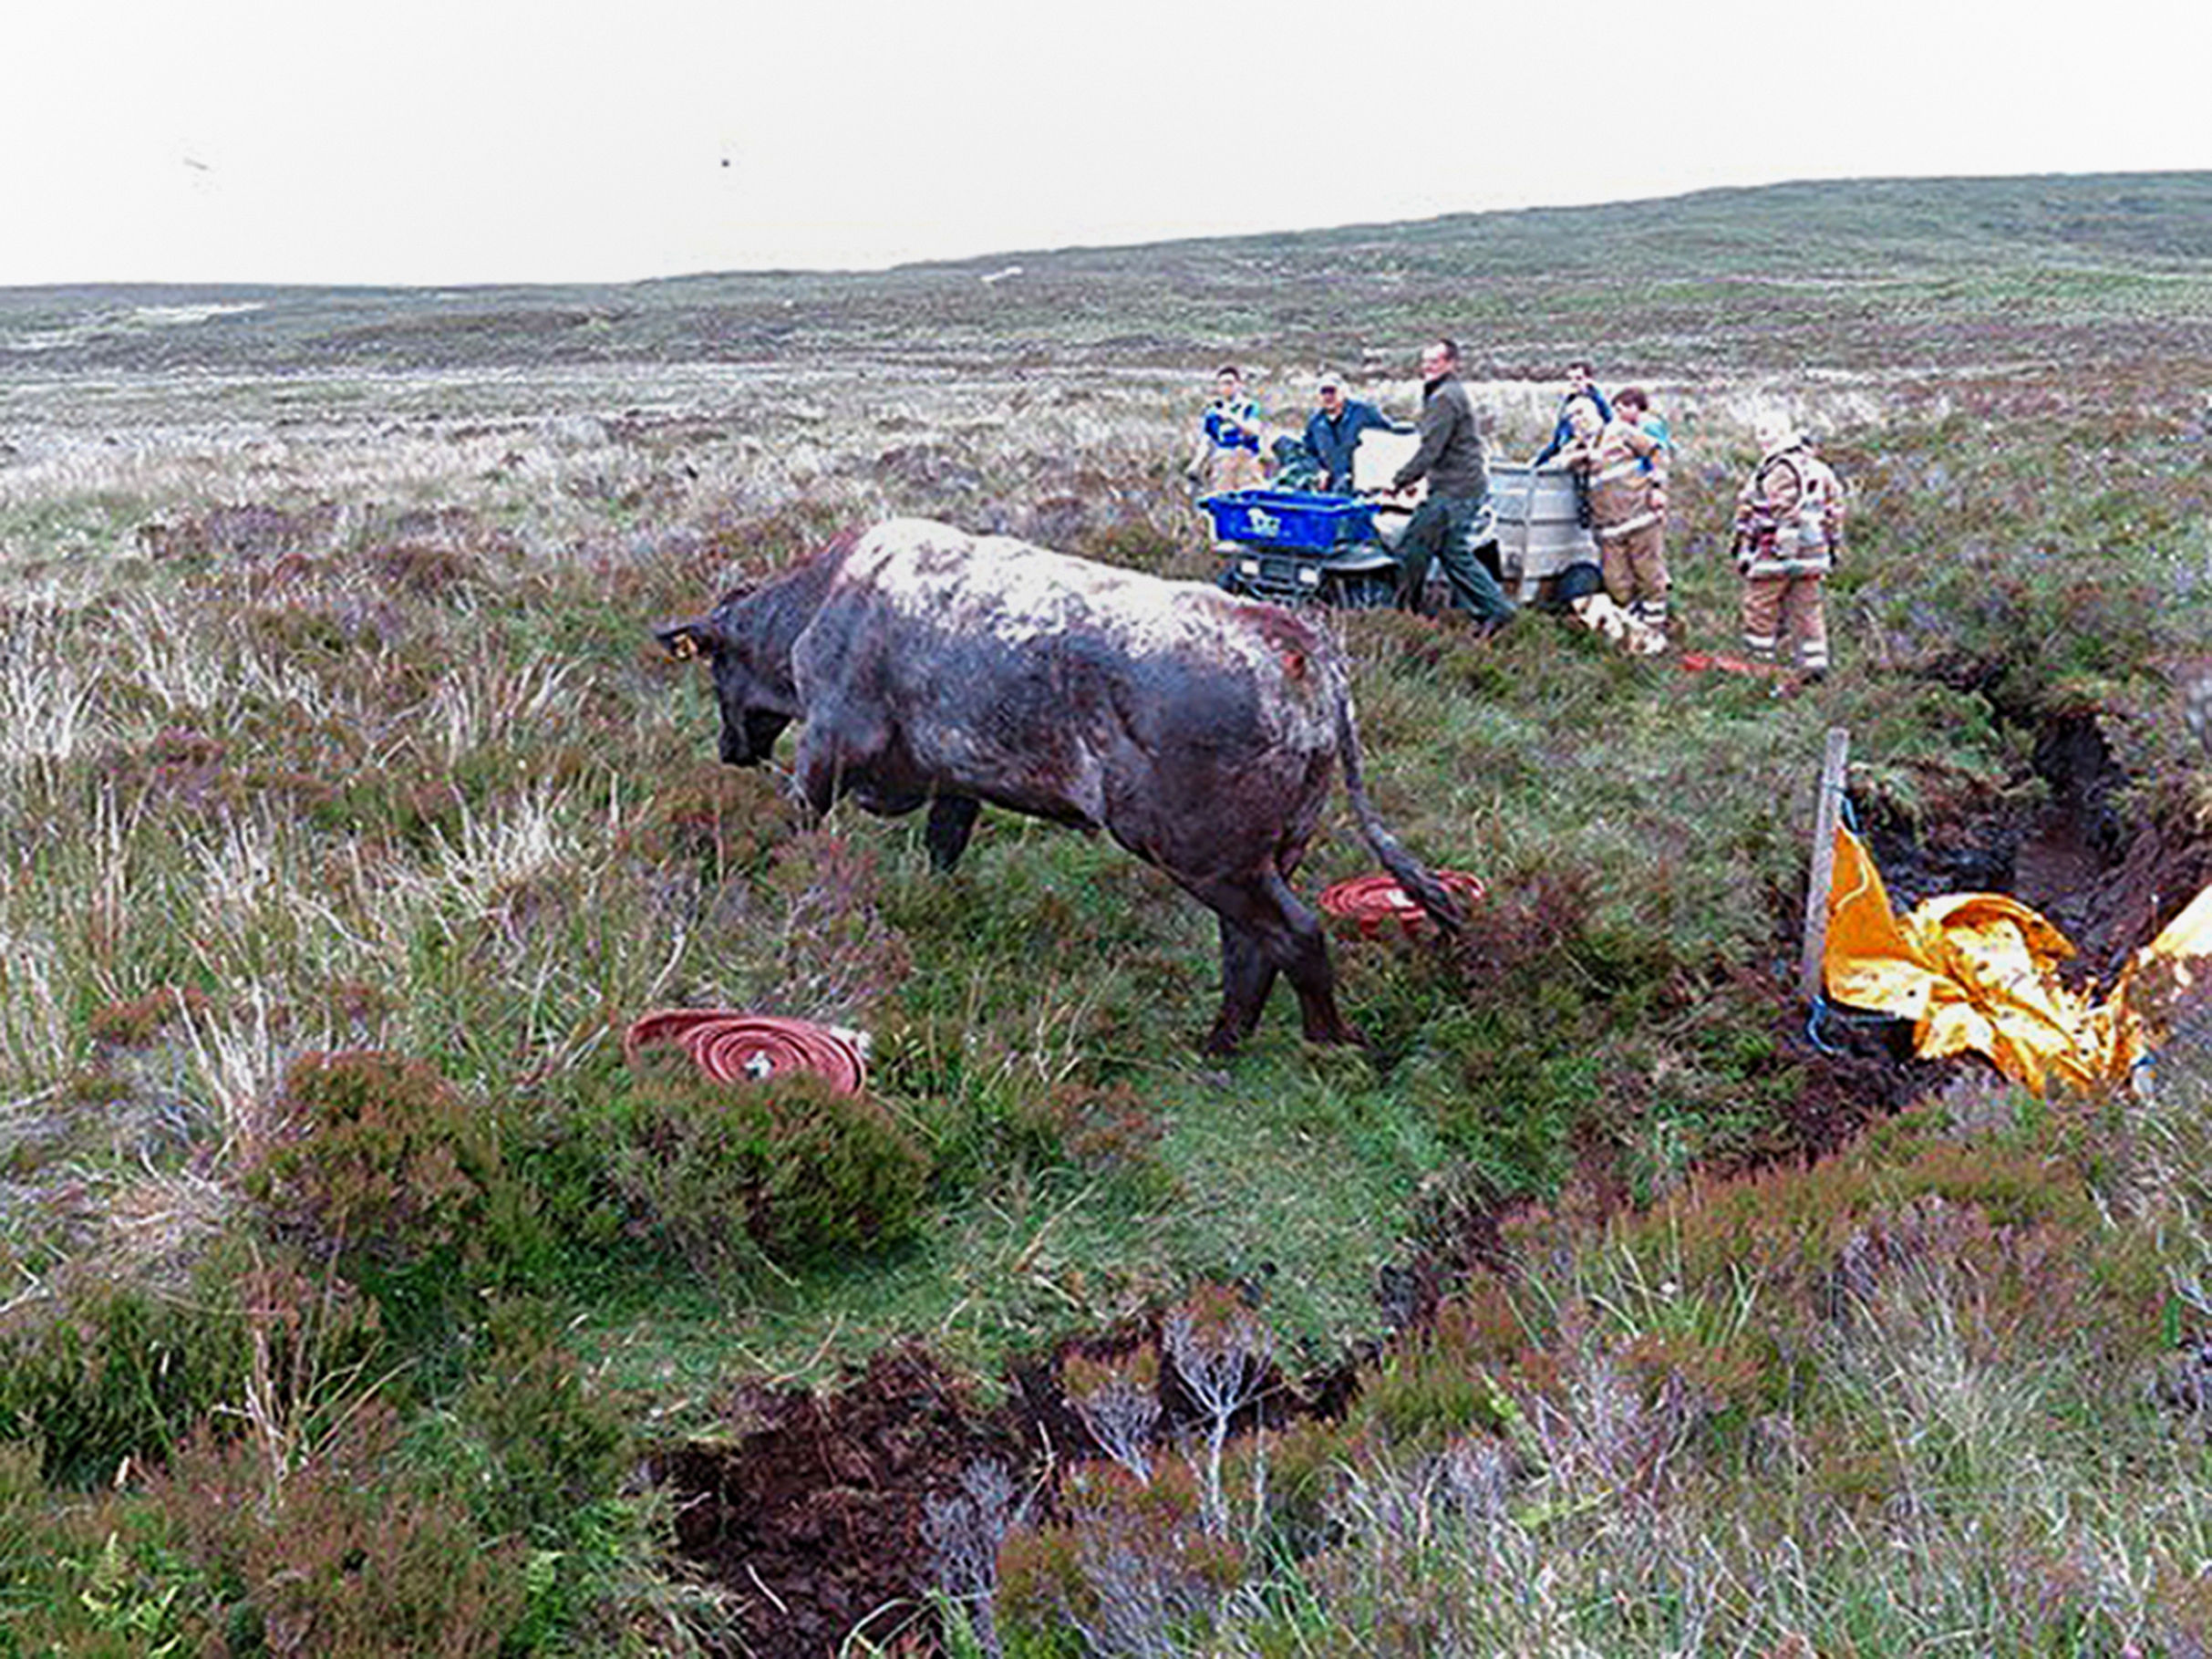 A 15-strong firefighter crew battled to rescue a bull which had been trapped in a ditch for two days on peatland on the Isle of Skye.